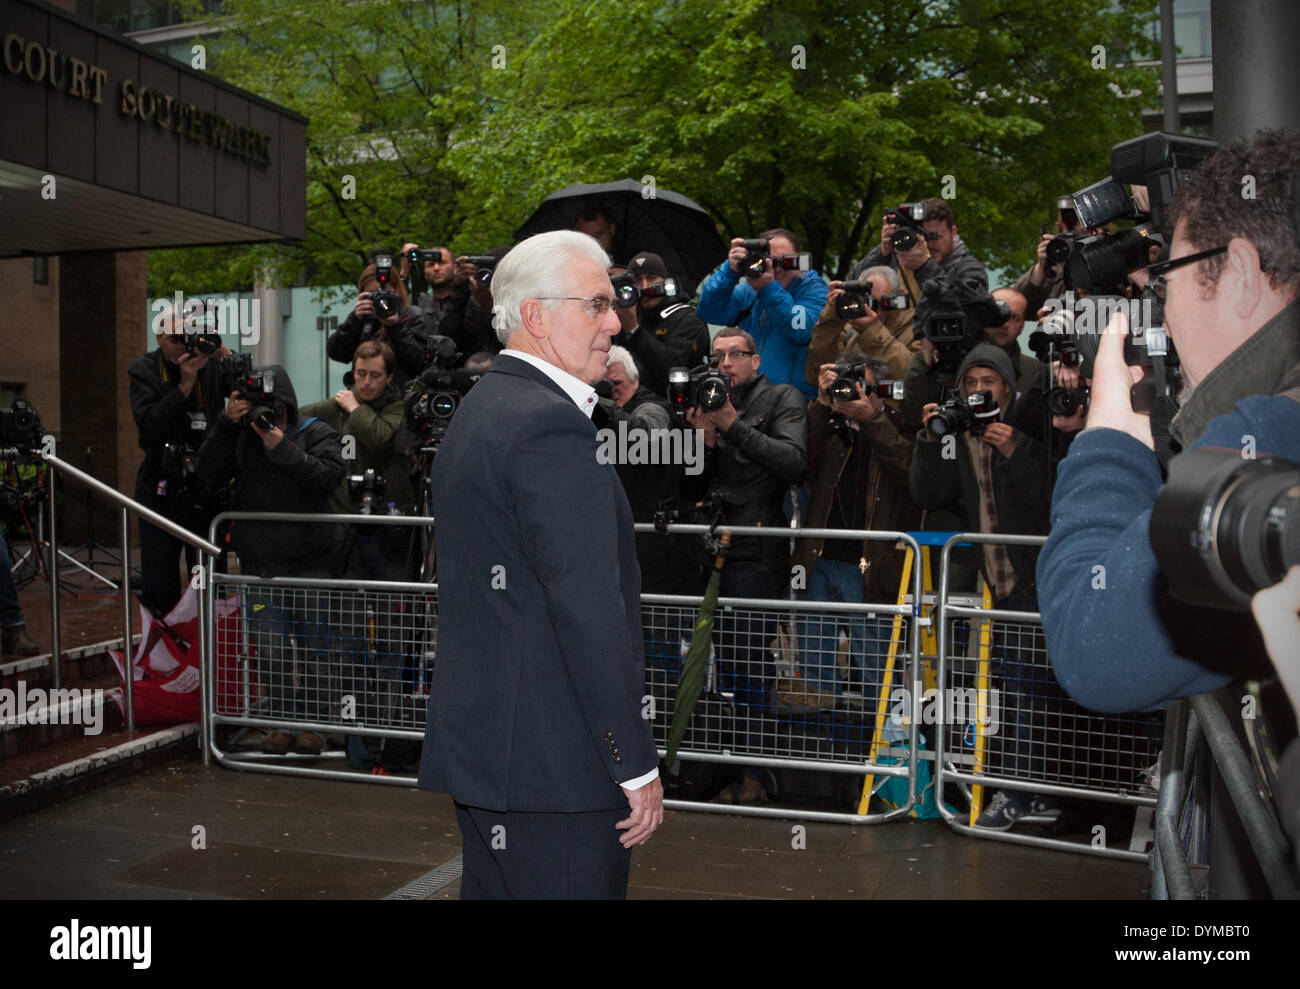 London, UK. 22nd April 2014. Publicist Max Clifford arrives at Southwark Crown Court charged with 11 counts of indecent assault on Tuesday, April 22, 2014. A verdict is expected today. Credit:  Heloise/Alamy Live News - Stock Image